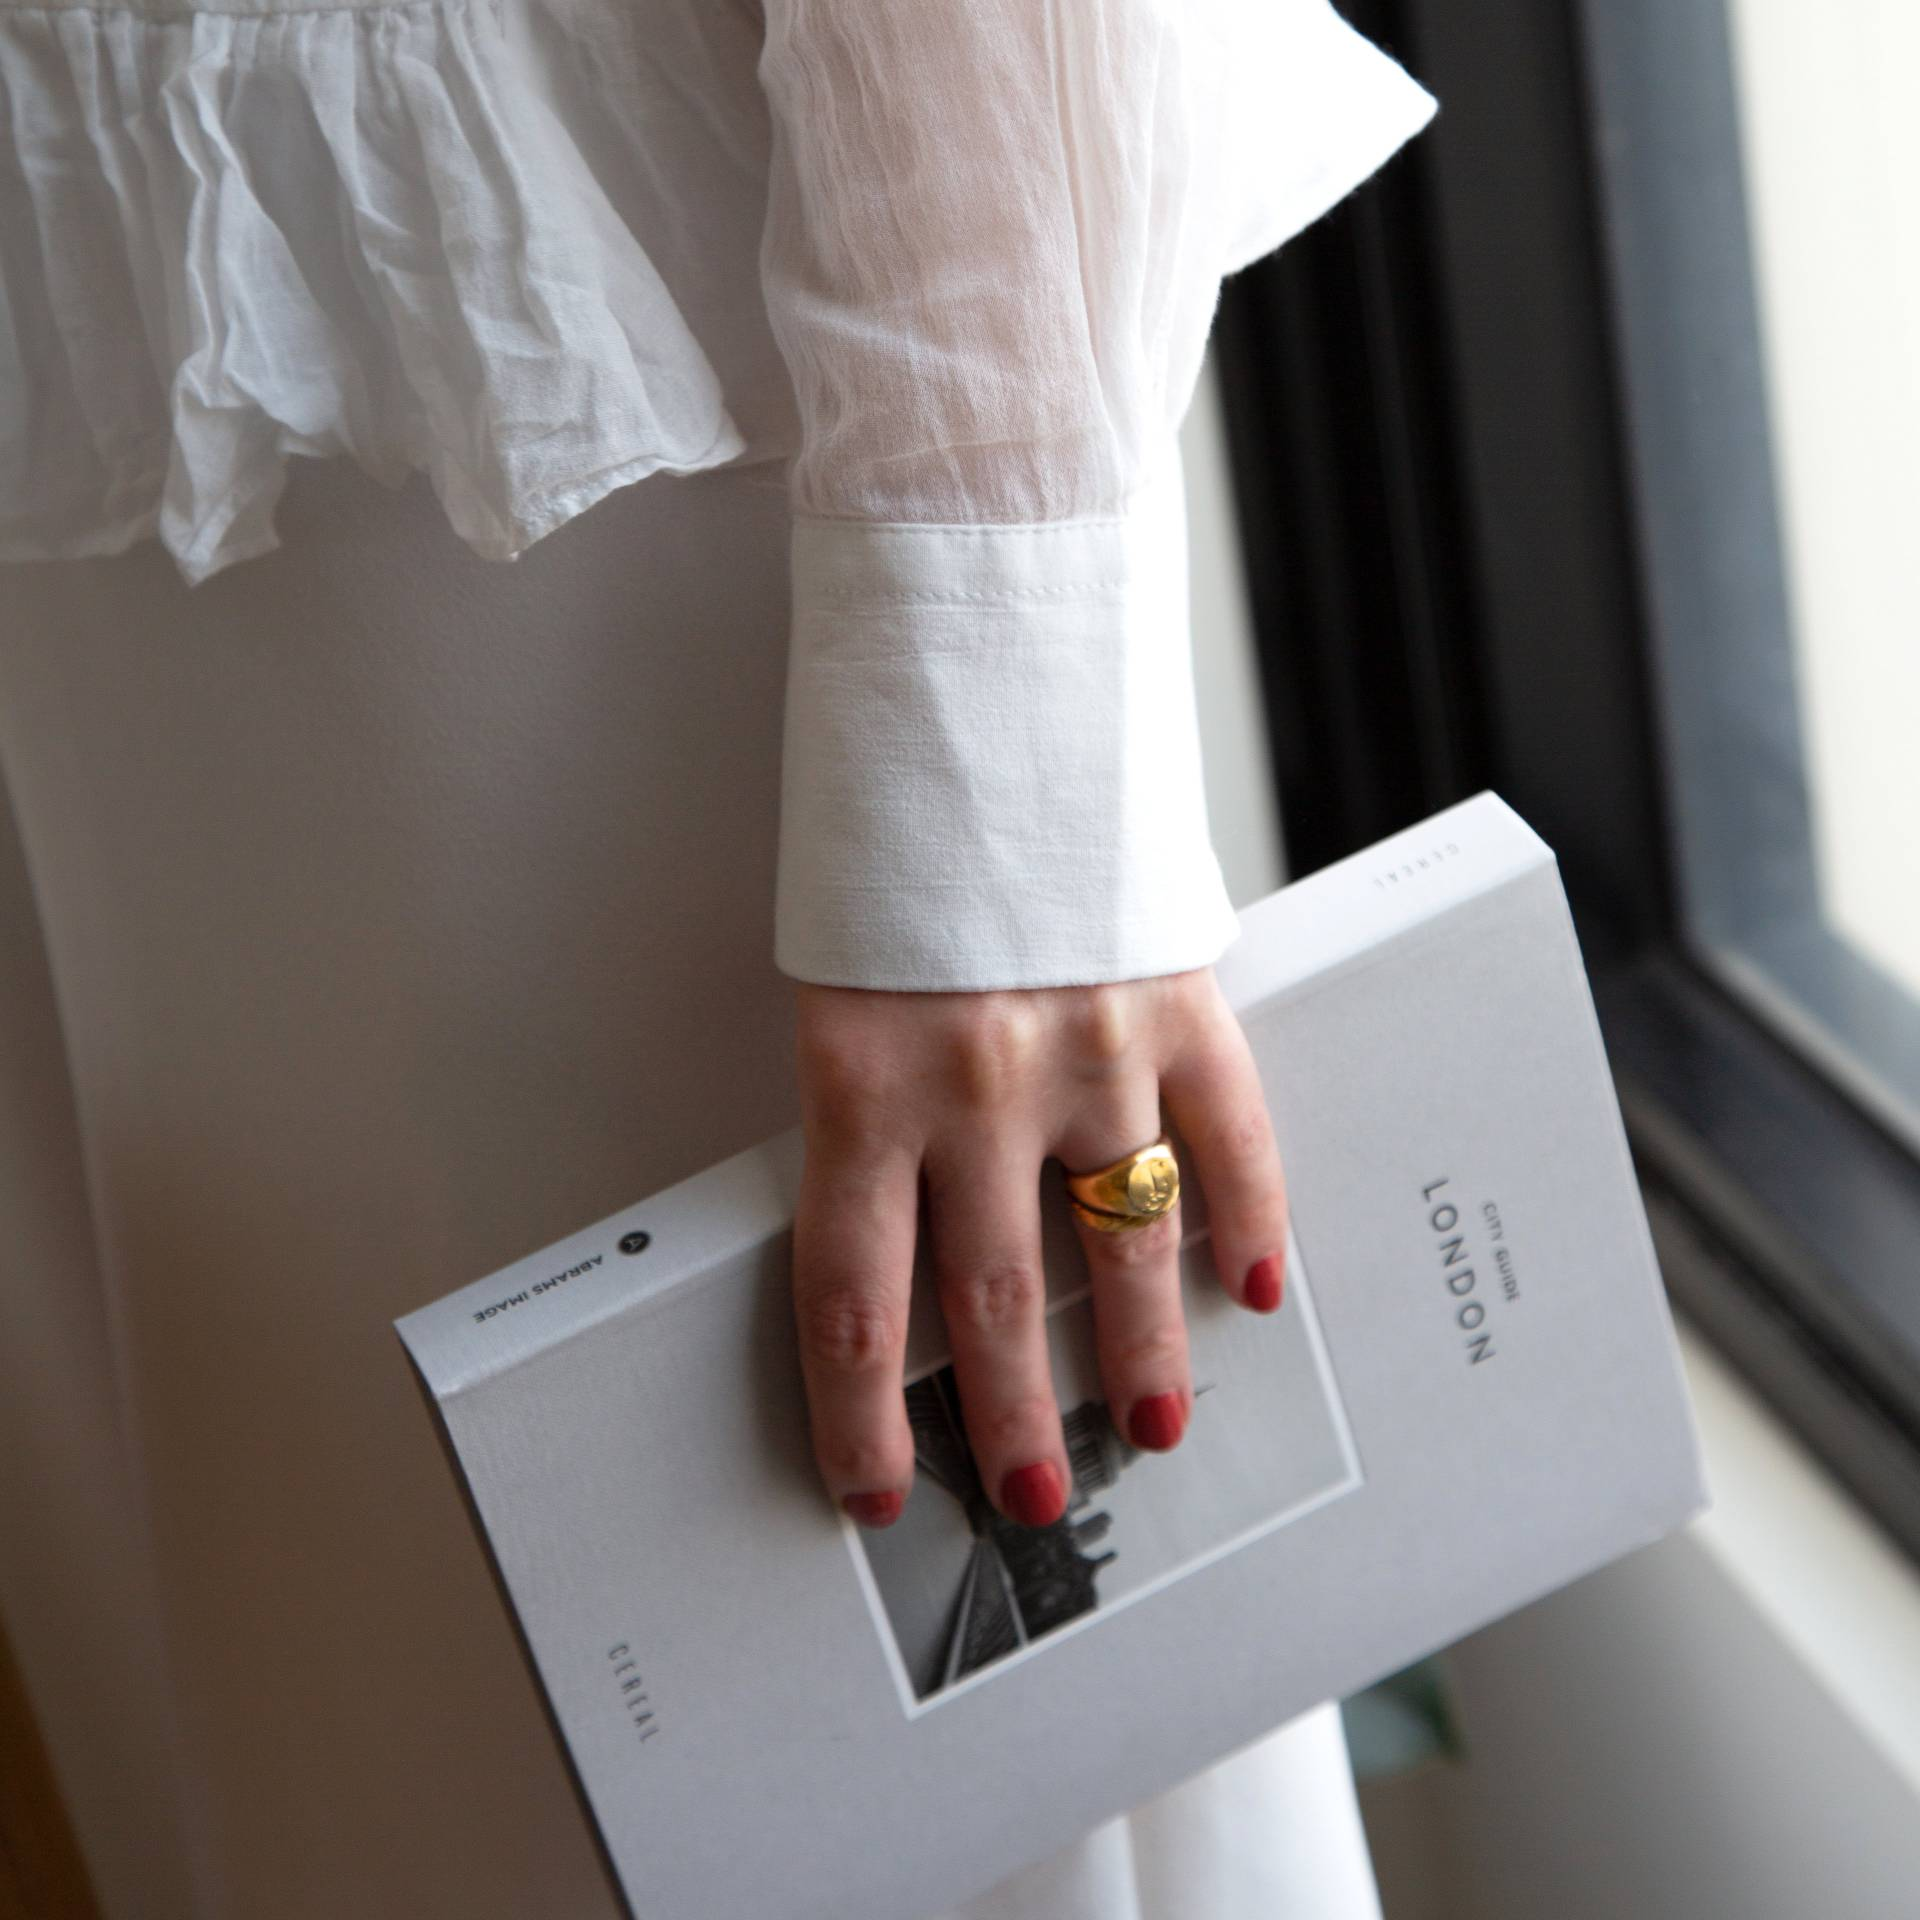 A female holding a white book about London, wearing Tuscan Summer a burnt orange shade of nail polish and a gold ring.